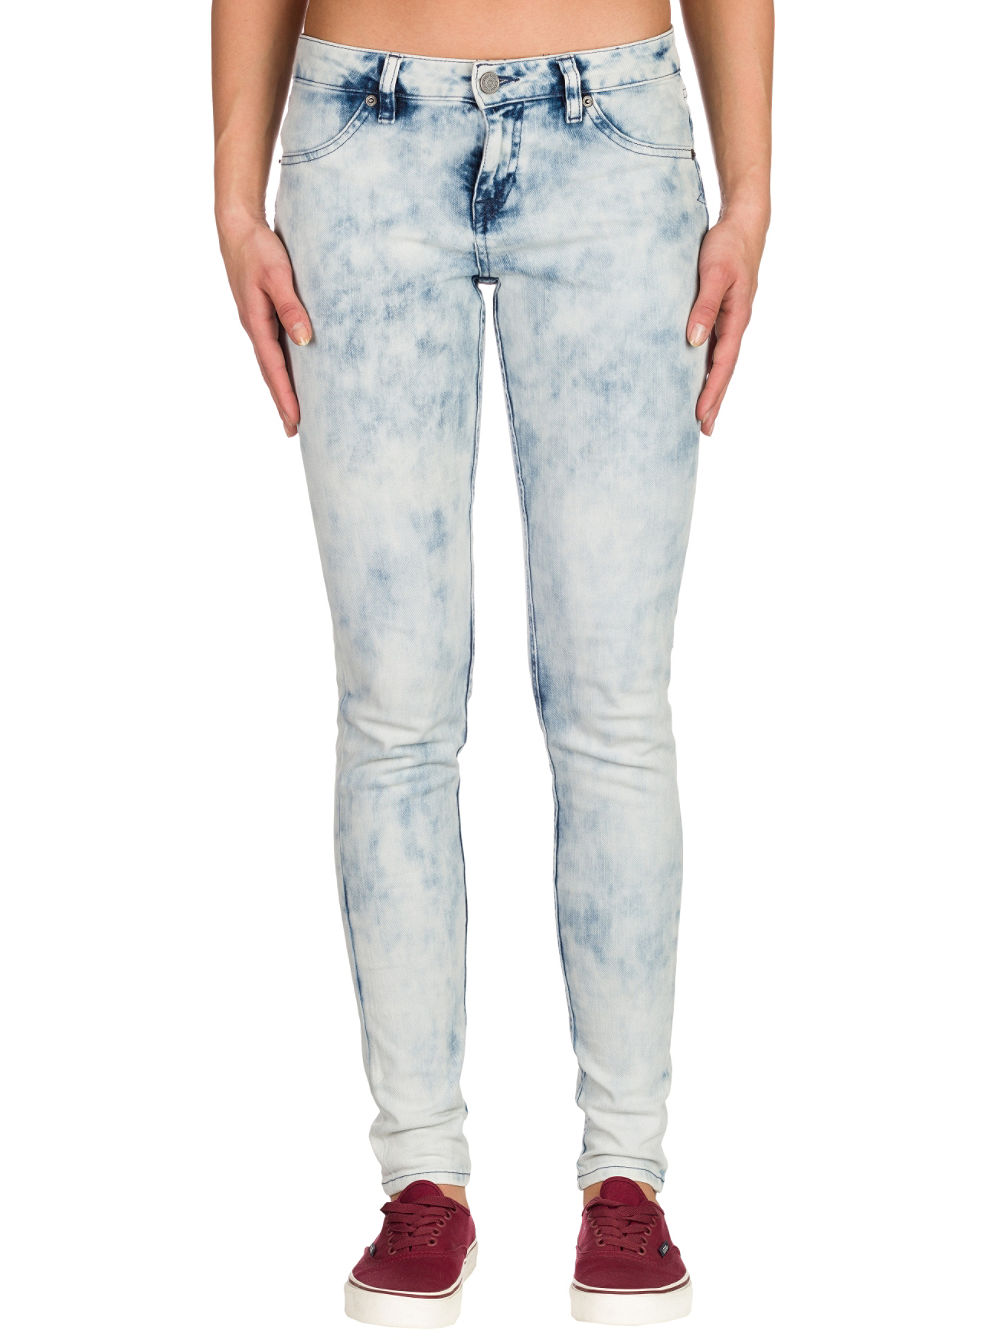 Liberator Leggings Jeans